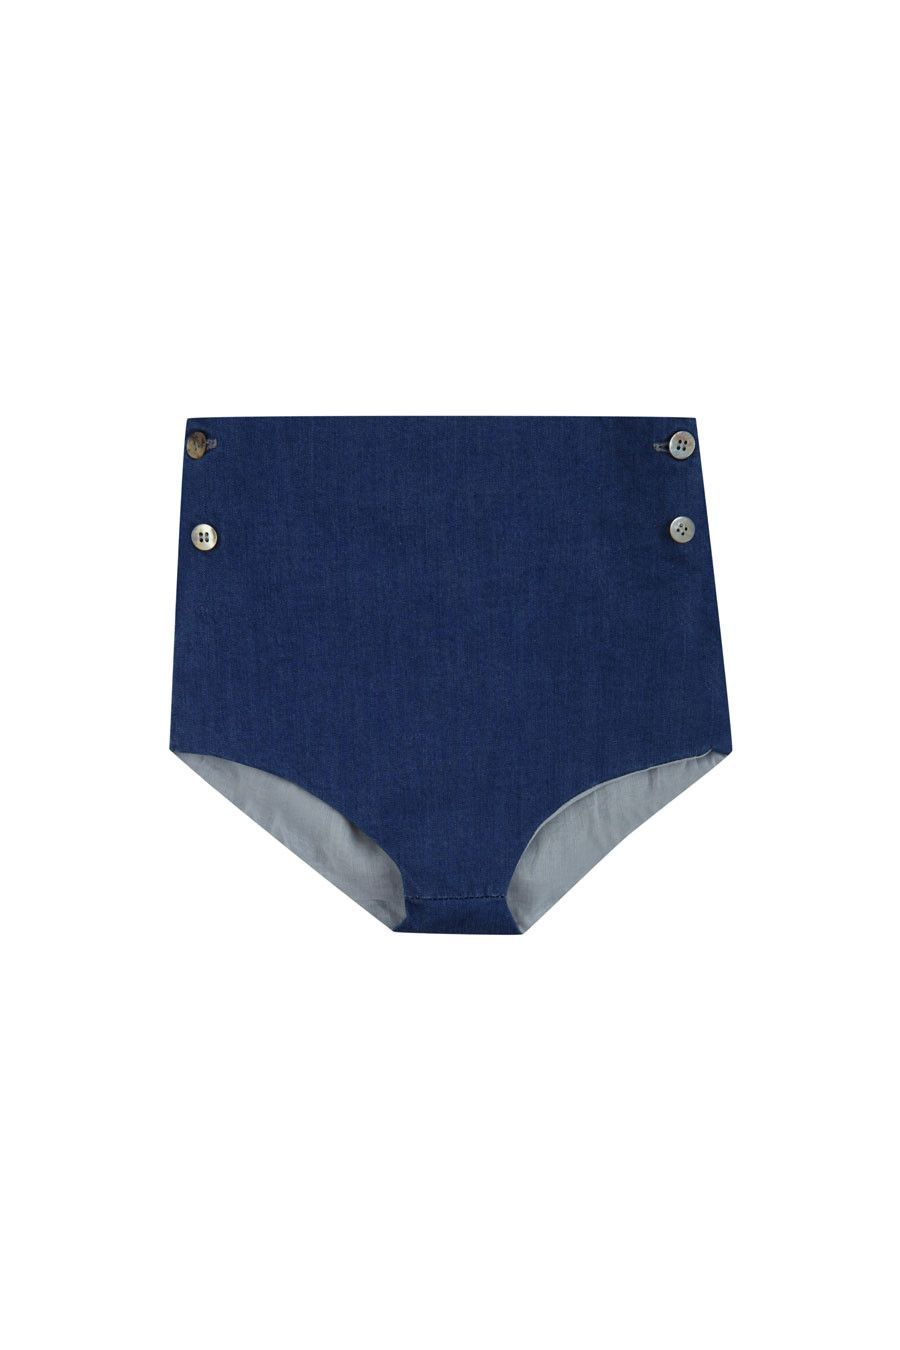 YELLOW PELOTA Denim West Culotte | petitfauve.com